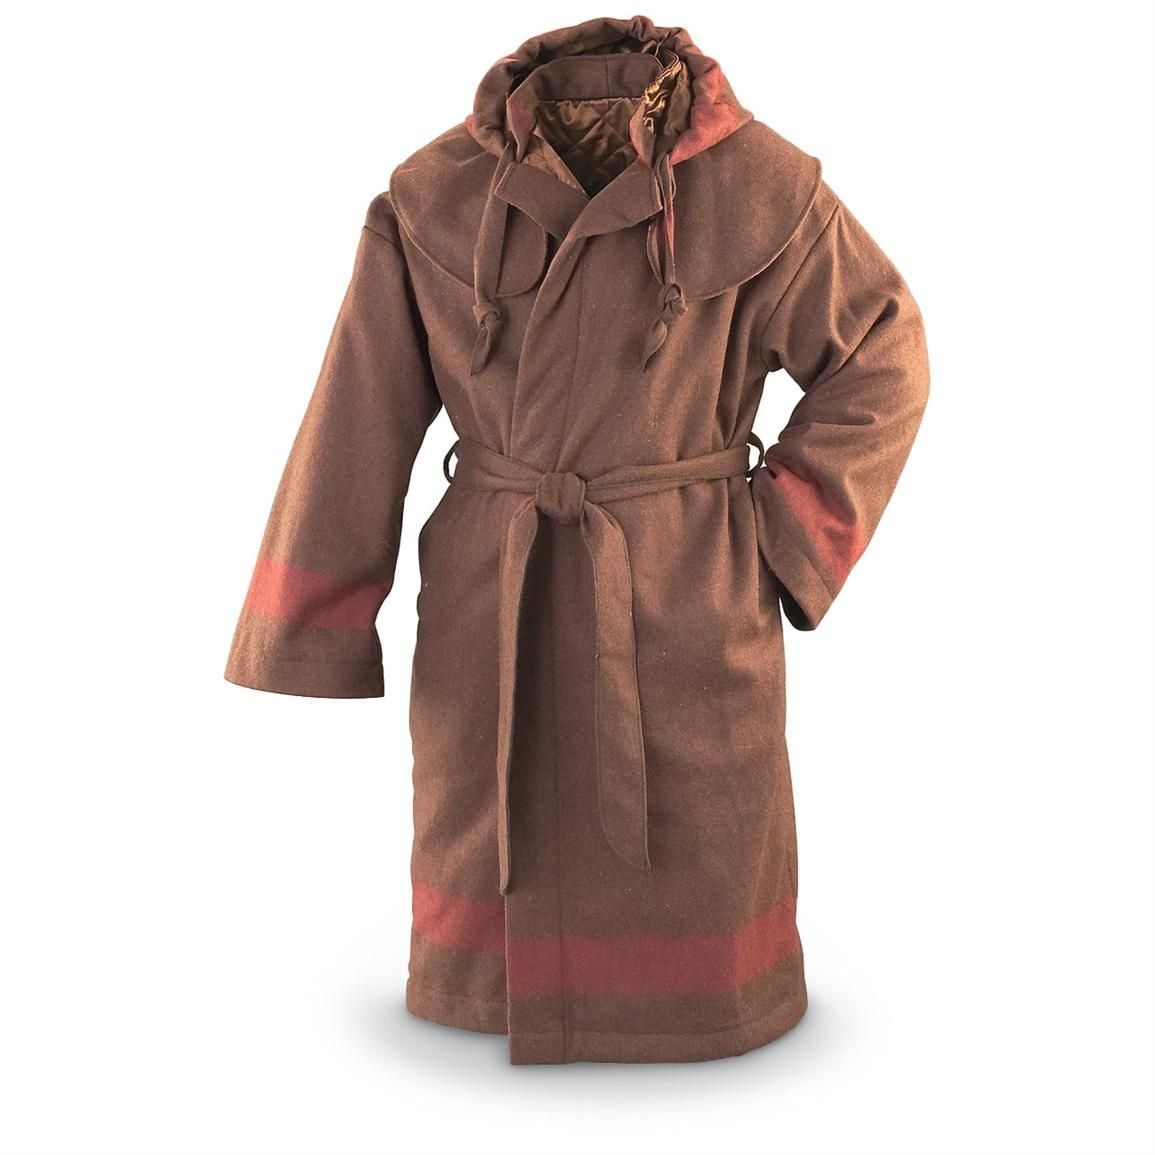 Original Mountain Man Hooded Capote - 585812, Jackets/Coats at Sportsman's  Guide